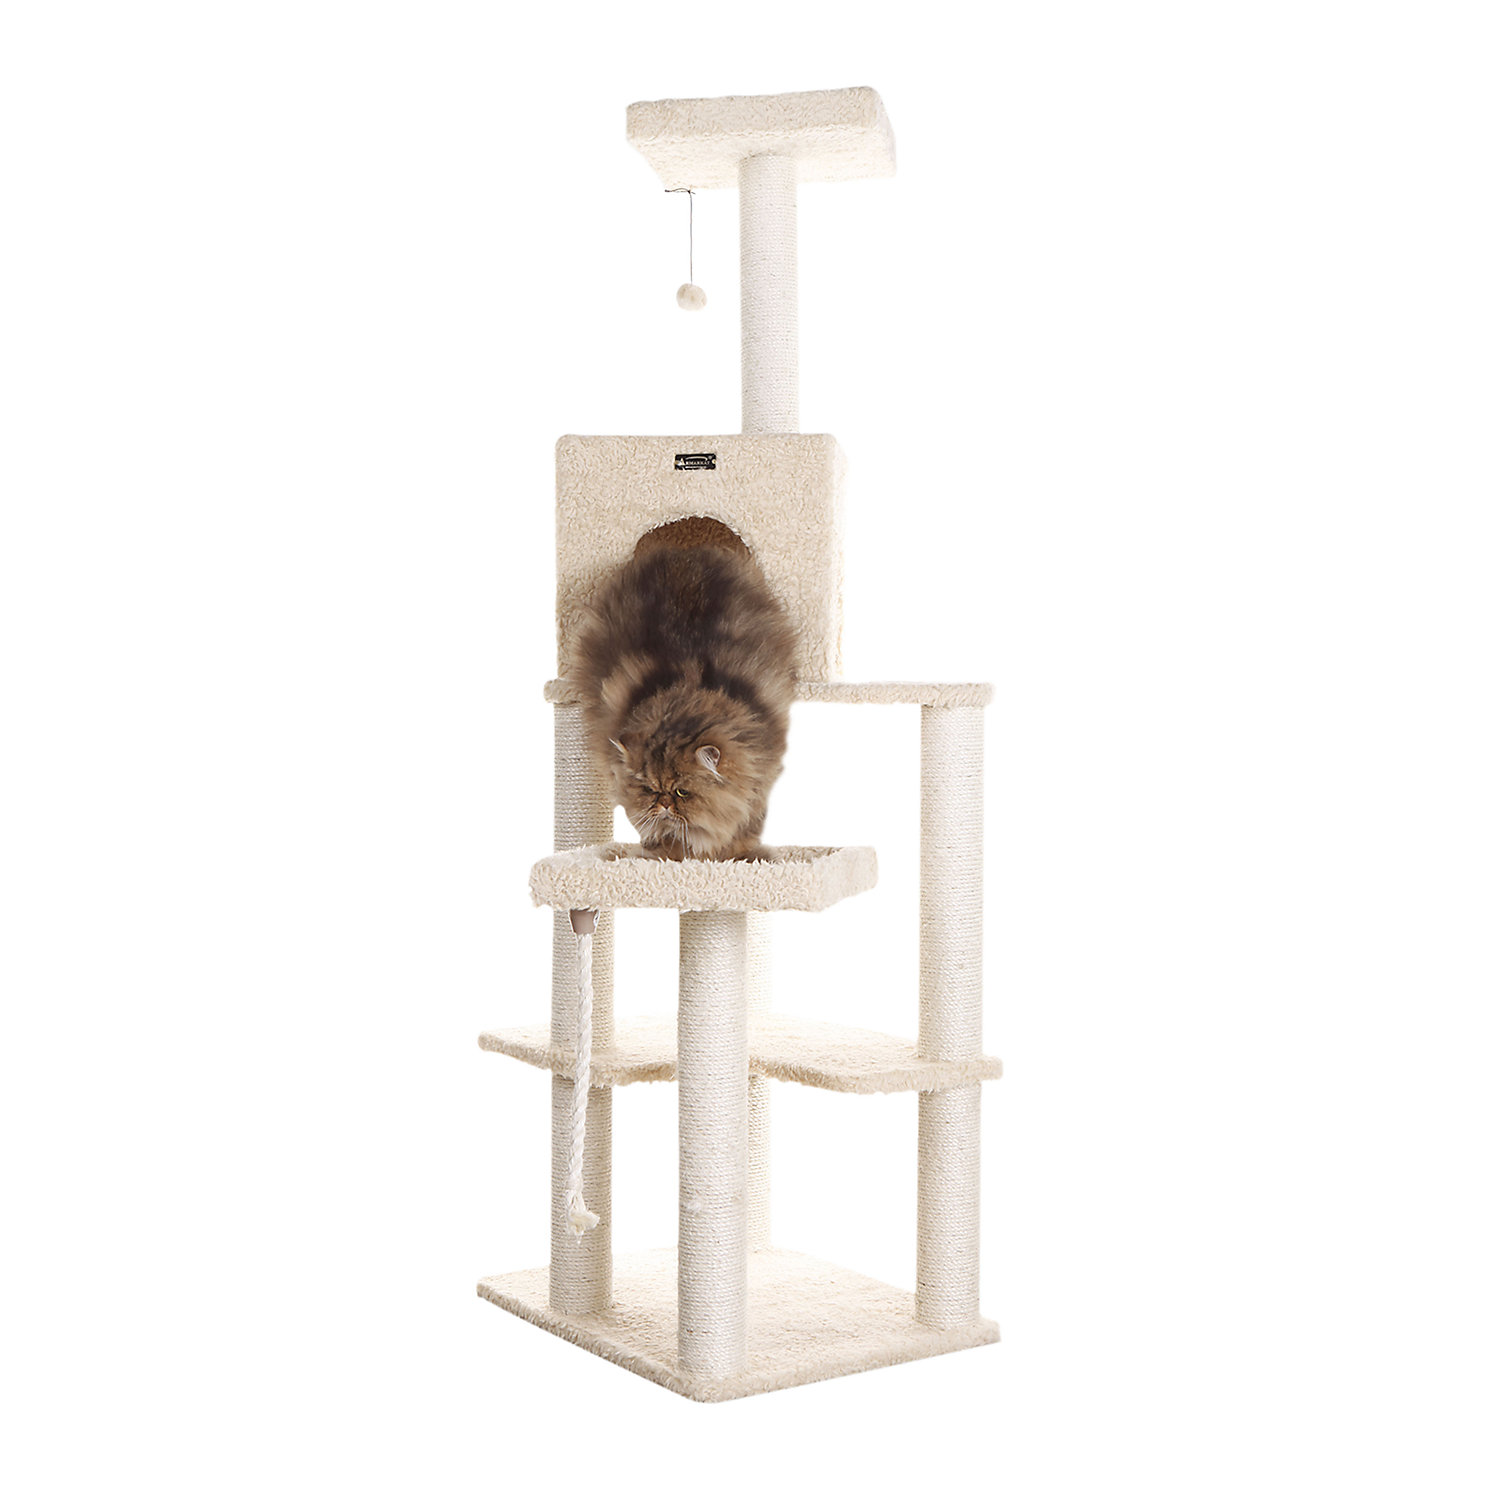 Armarkat Classic Cat Tree Model A6902 Beige